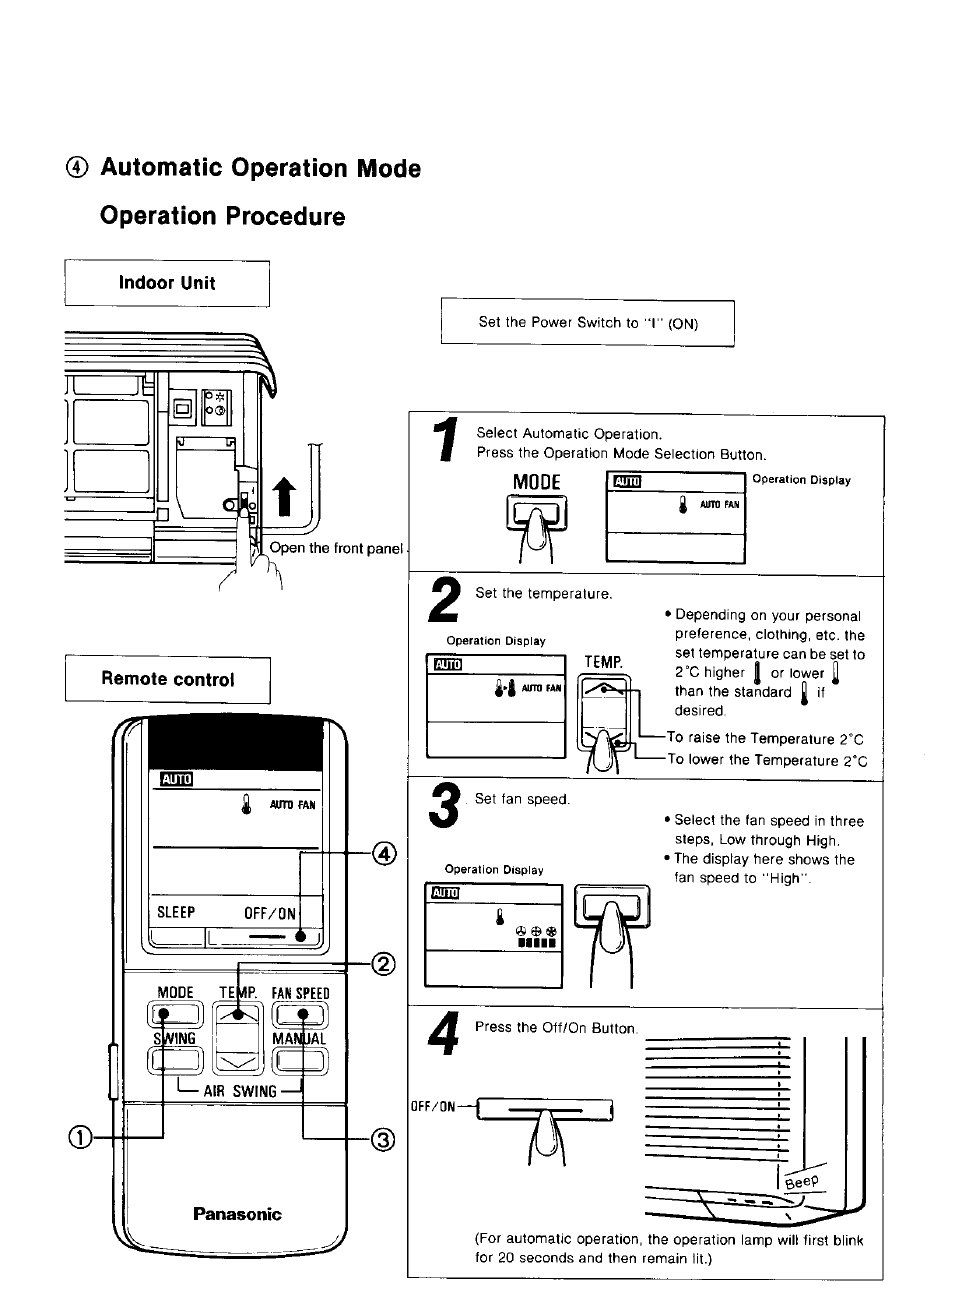 Indoor unit, Panasonic, Automatic operation mode operation